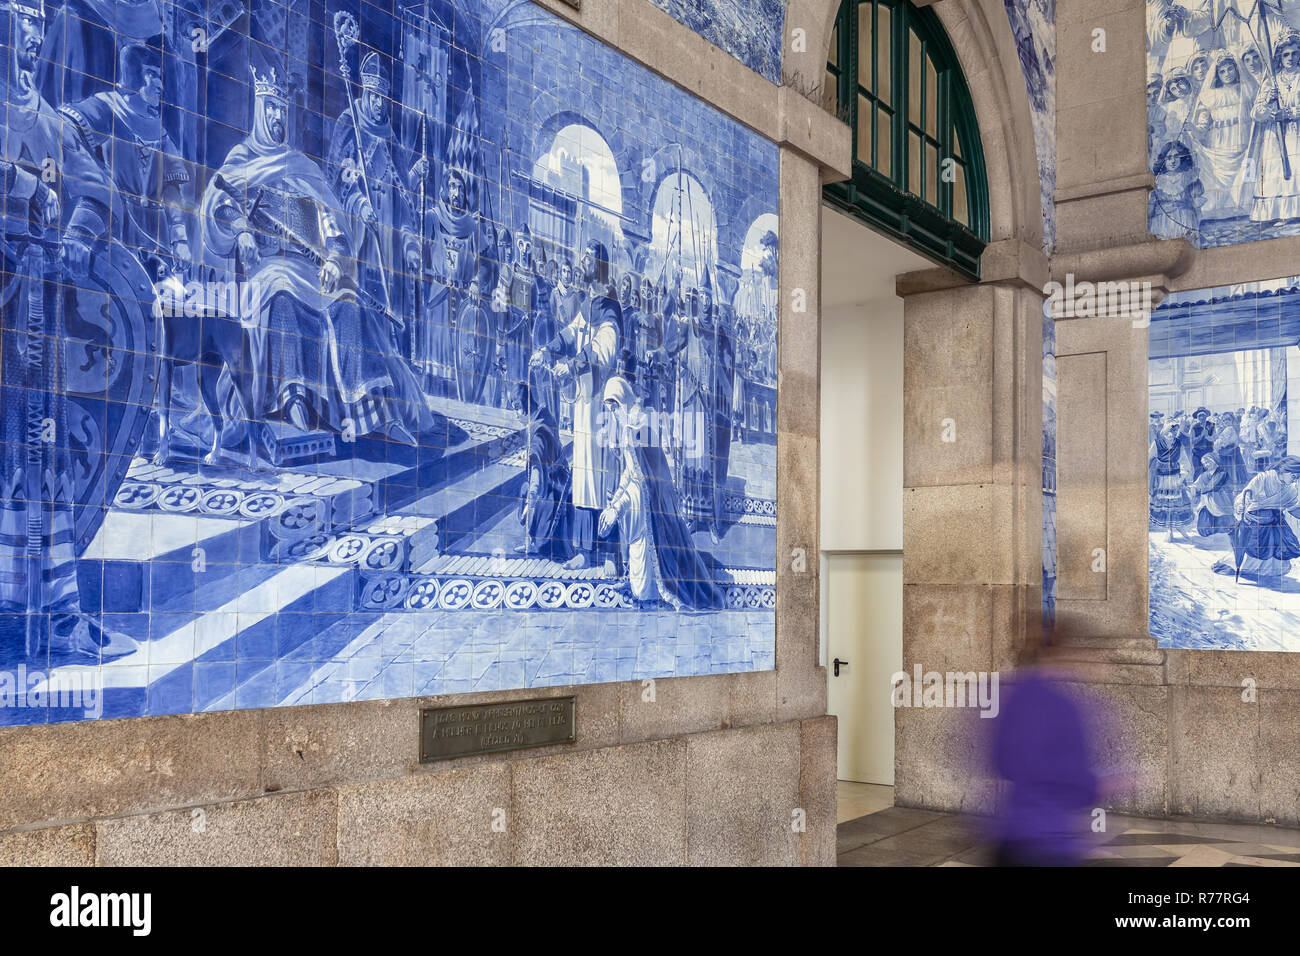 Sao Bento station with traditional portugese tiles Azulejos representing Portugal history, Porto - Stock Image